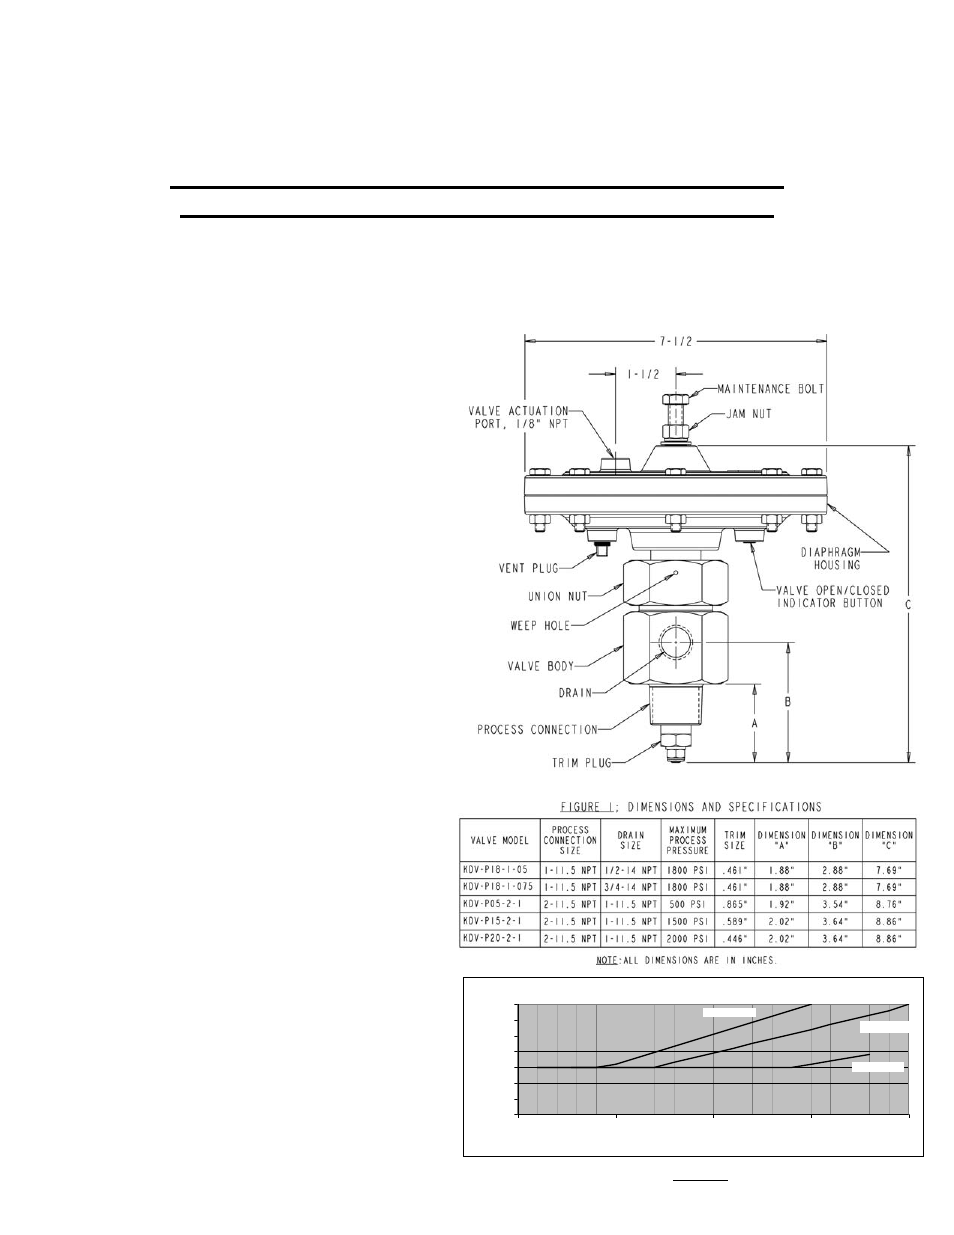 Kenco engineering kdv dumpvalve user manual 4 pages ccuart Choice Image